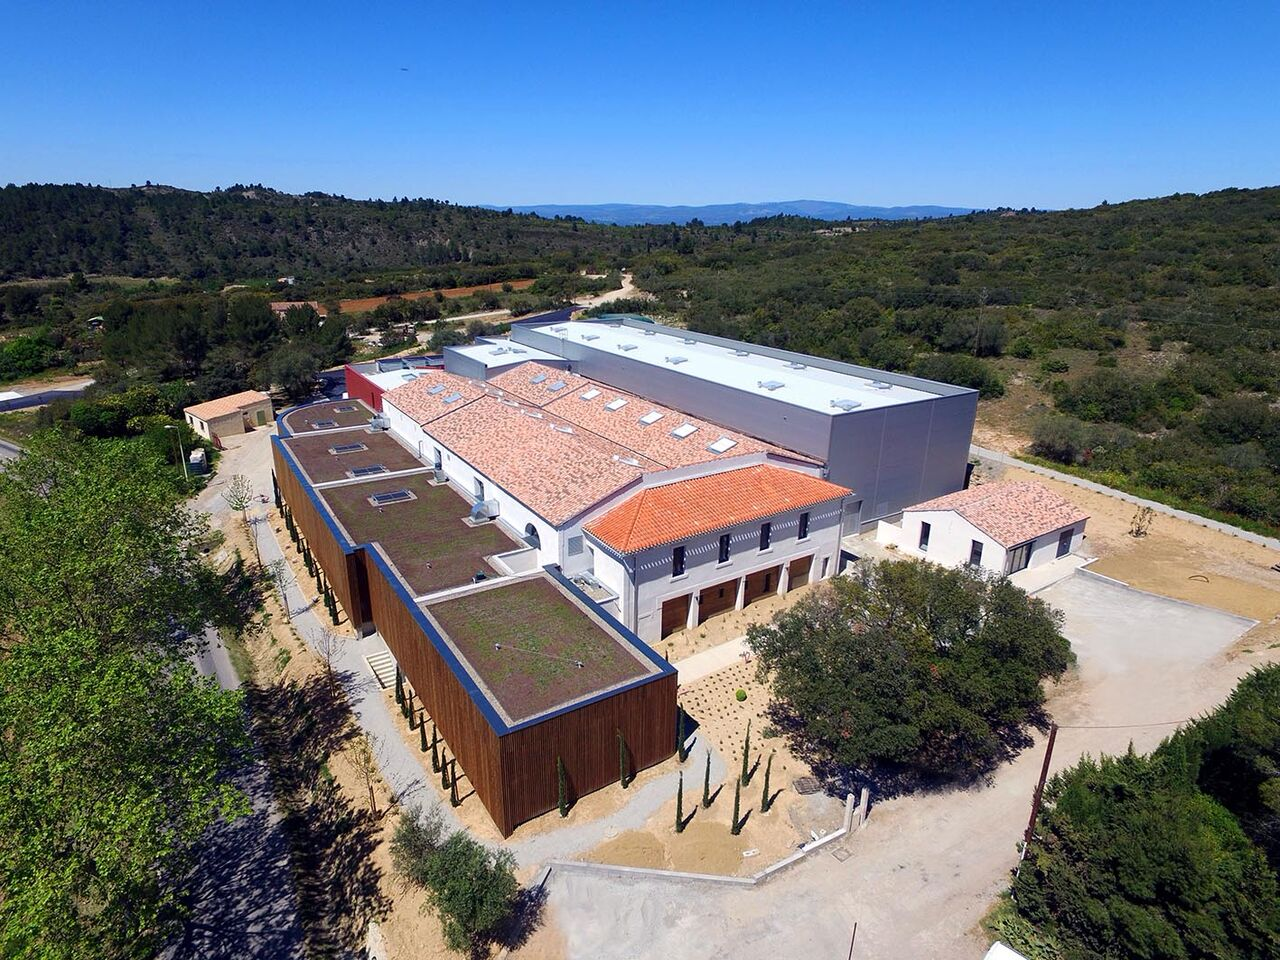 BADET C photo  Winery in Monze Languedoc_preview.jpg